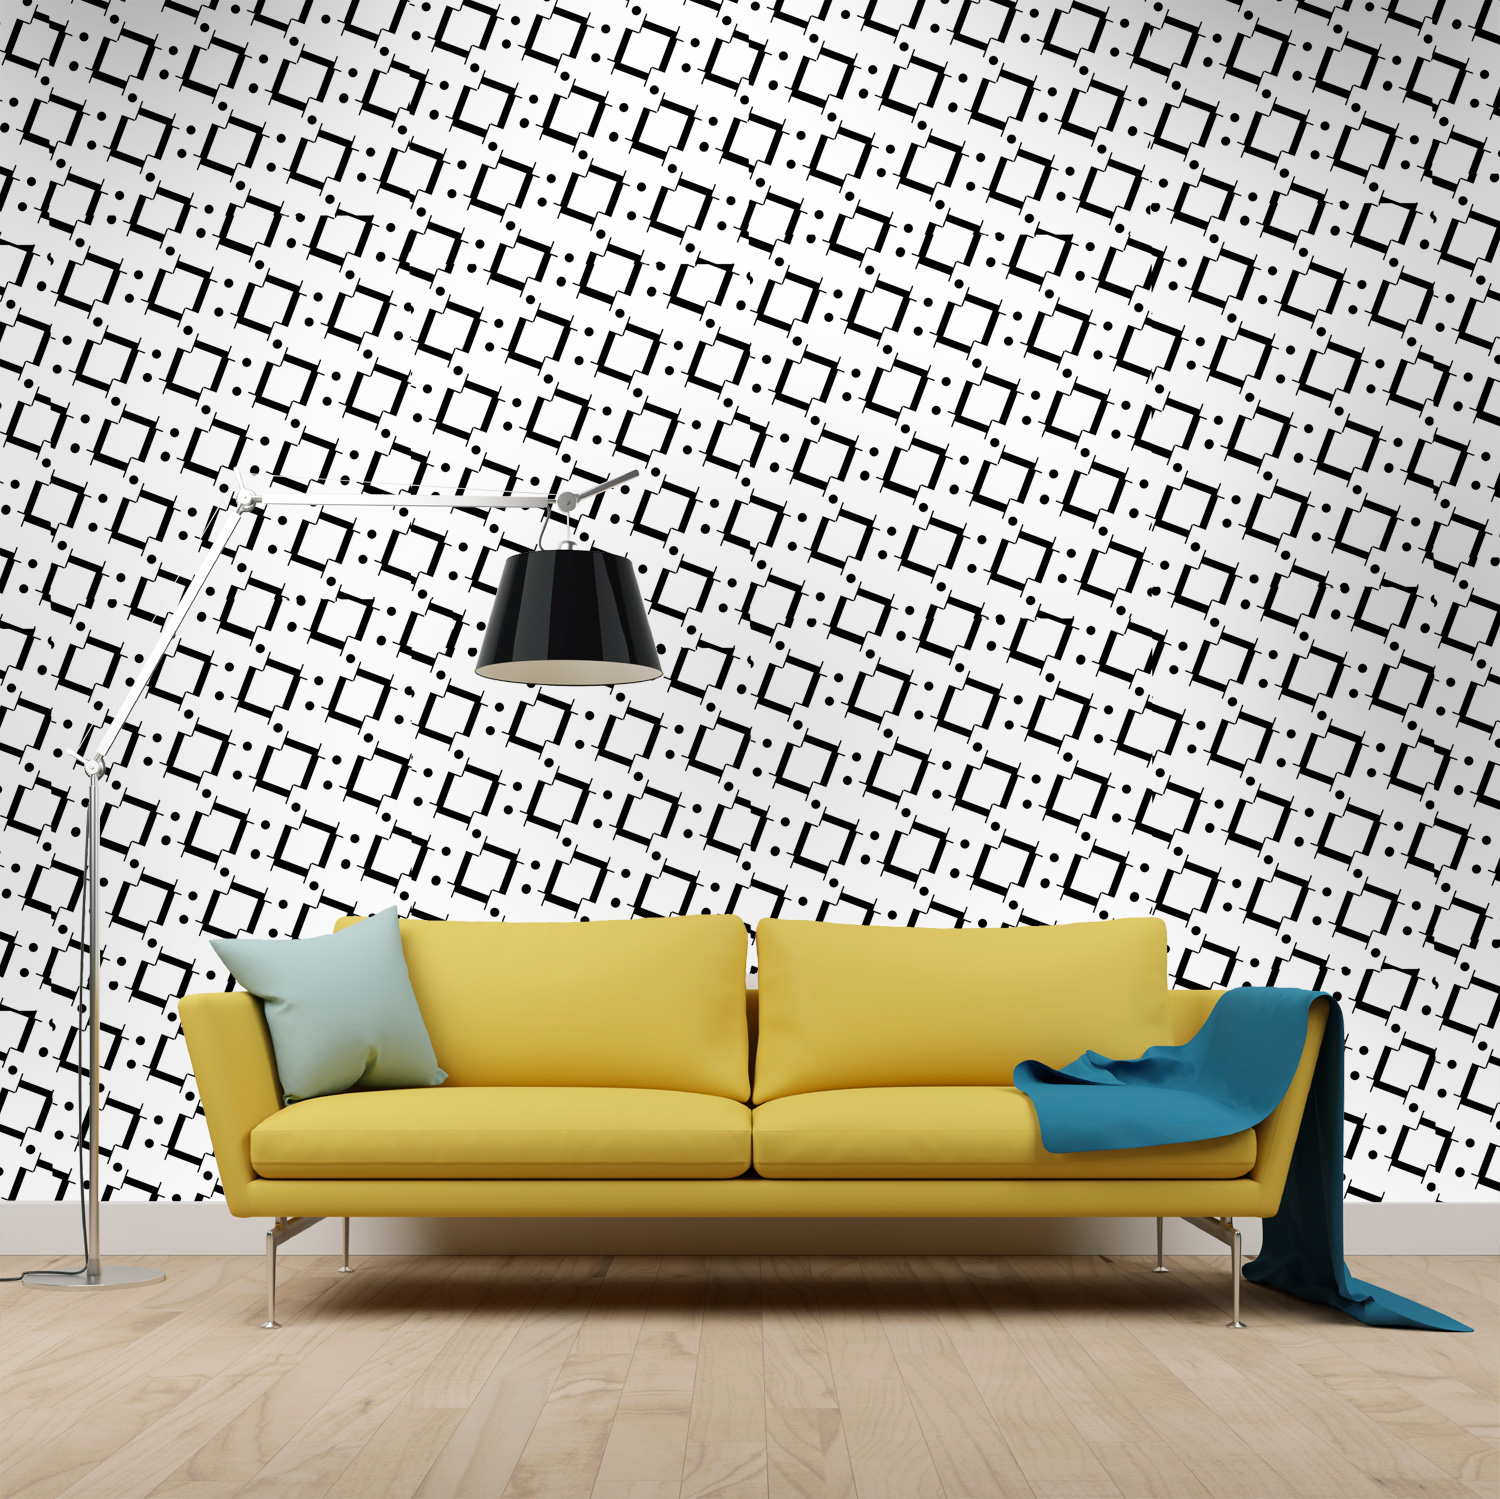 Yellow-Couch-Black-Lamp-DOMINO-charcoal.jpg